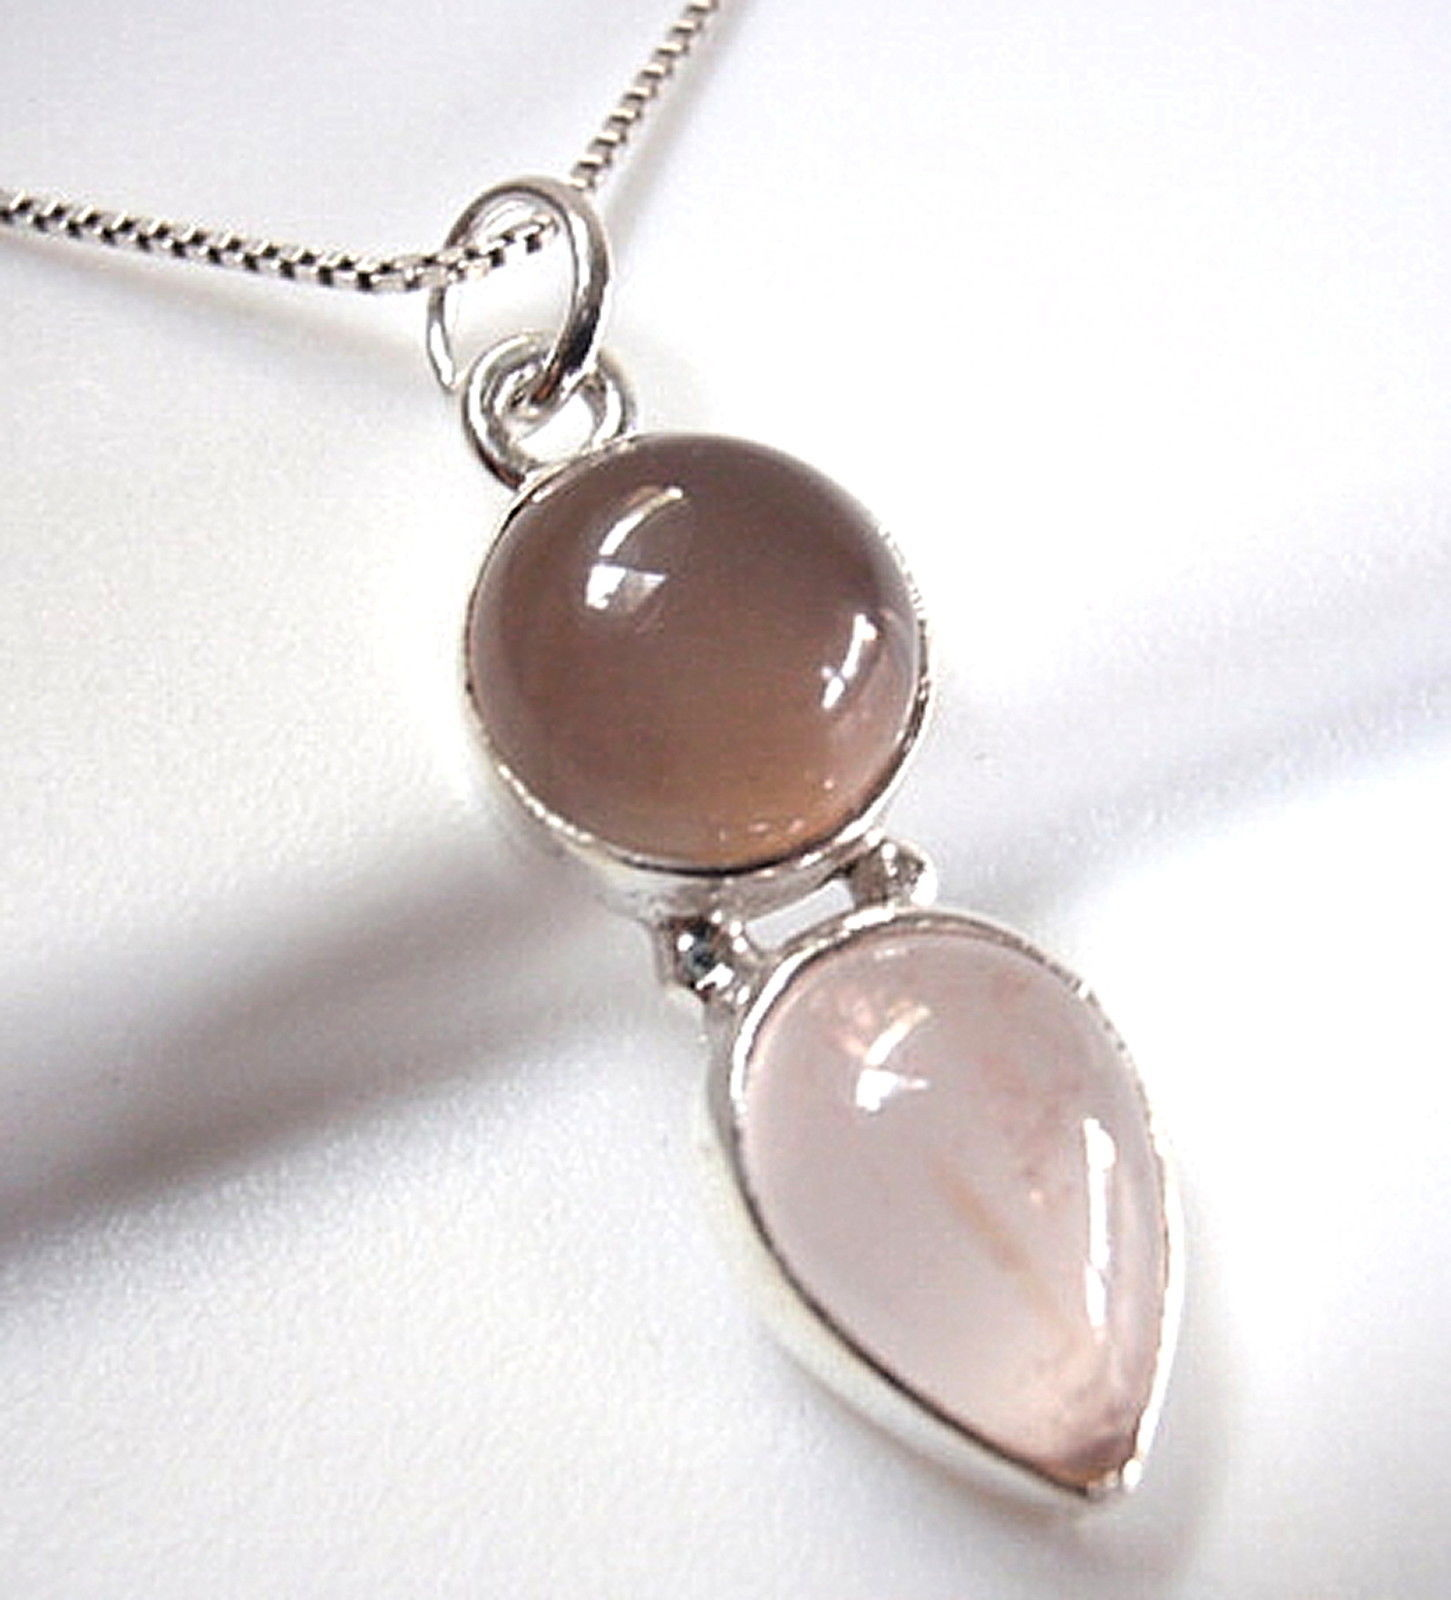 Rose Quartz Two-Tone Double Gem 925 Sterling Silver Pendant Round Teardrop #128a - $14.09